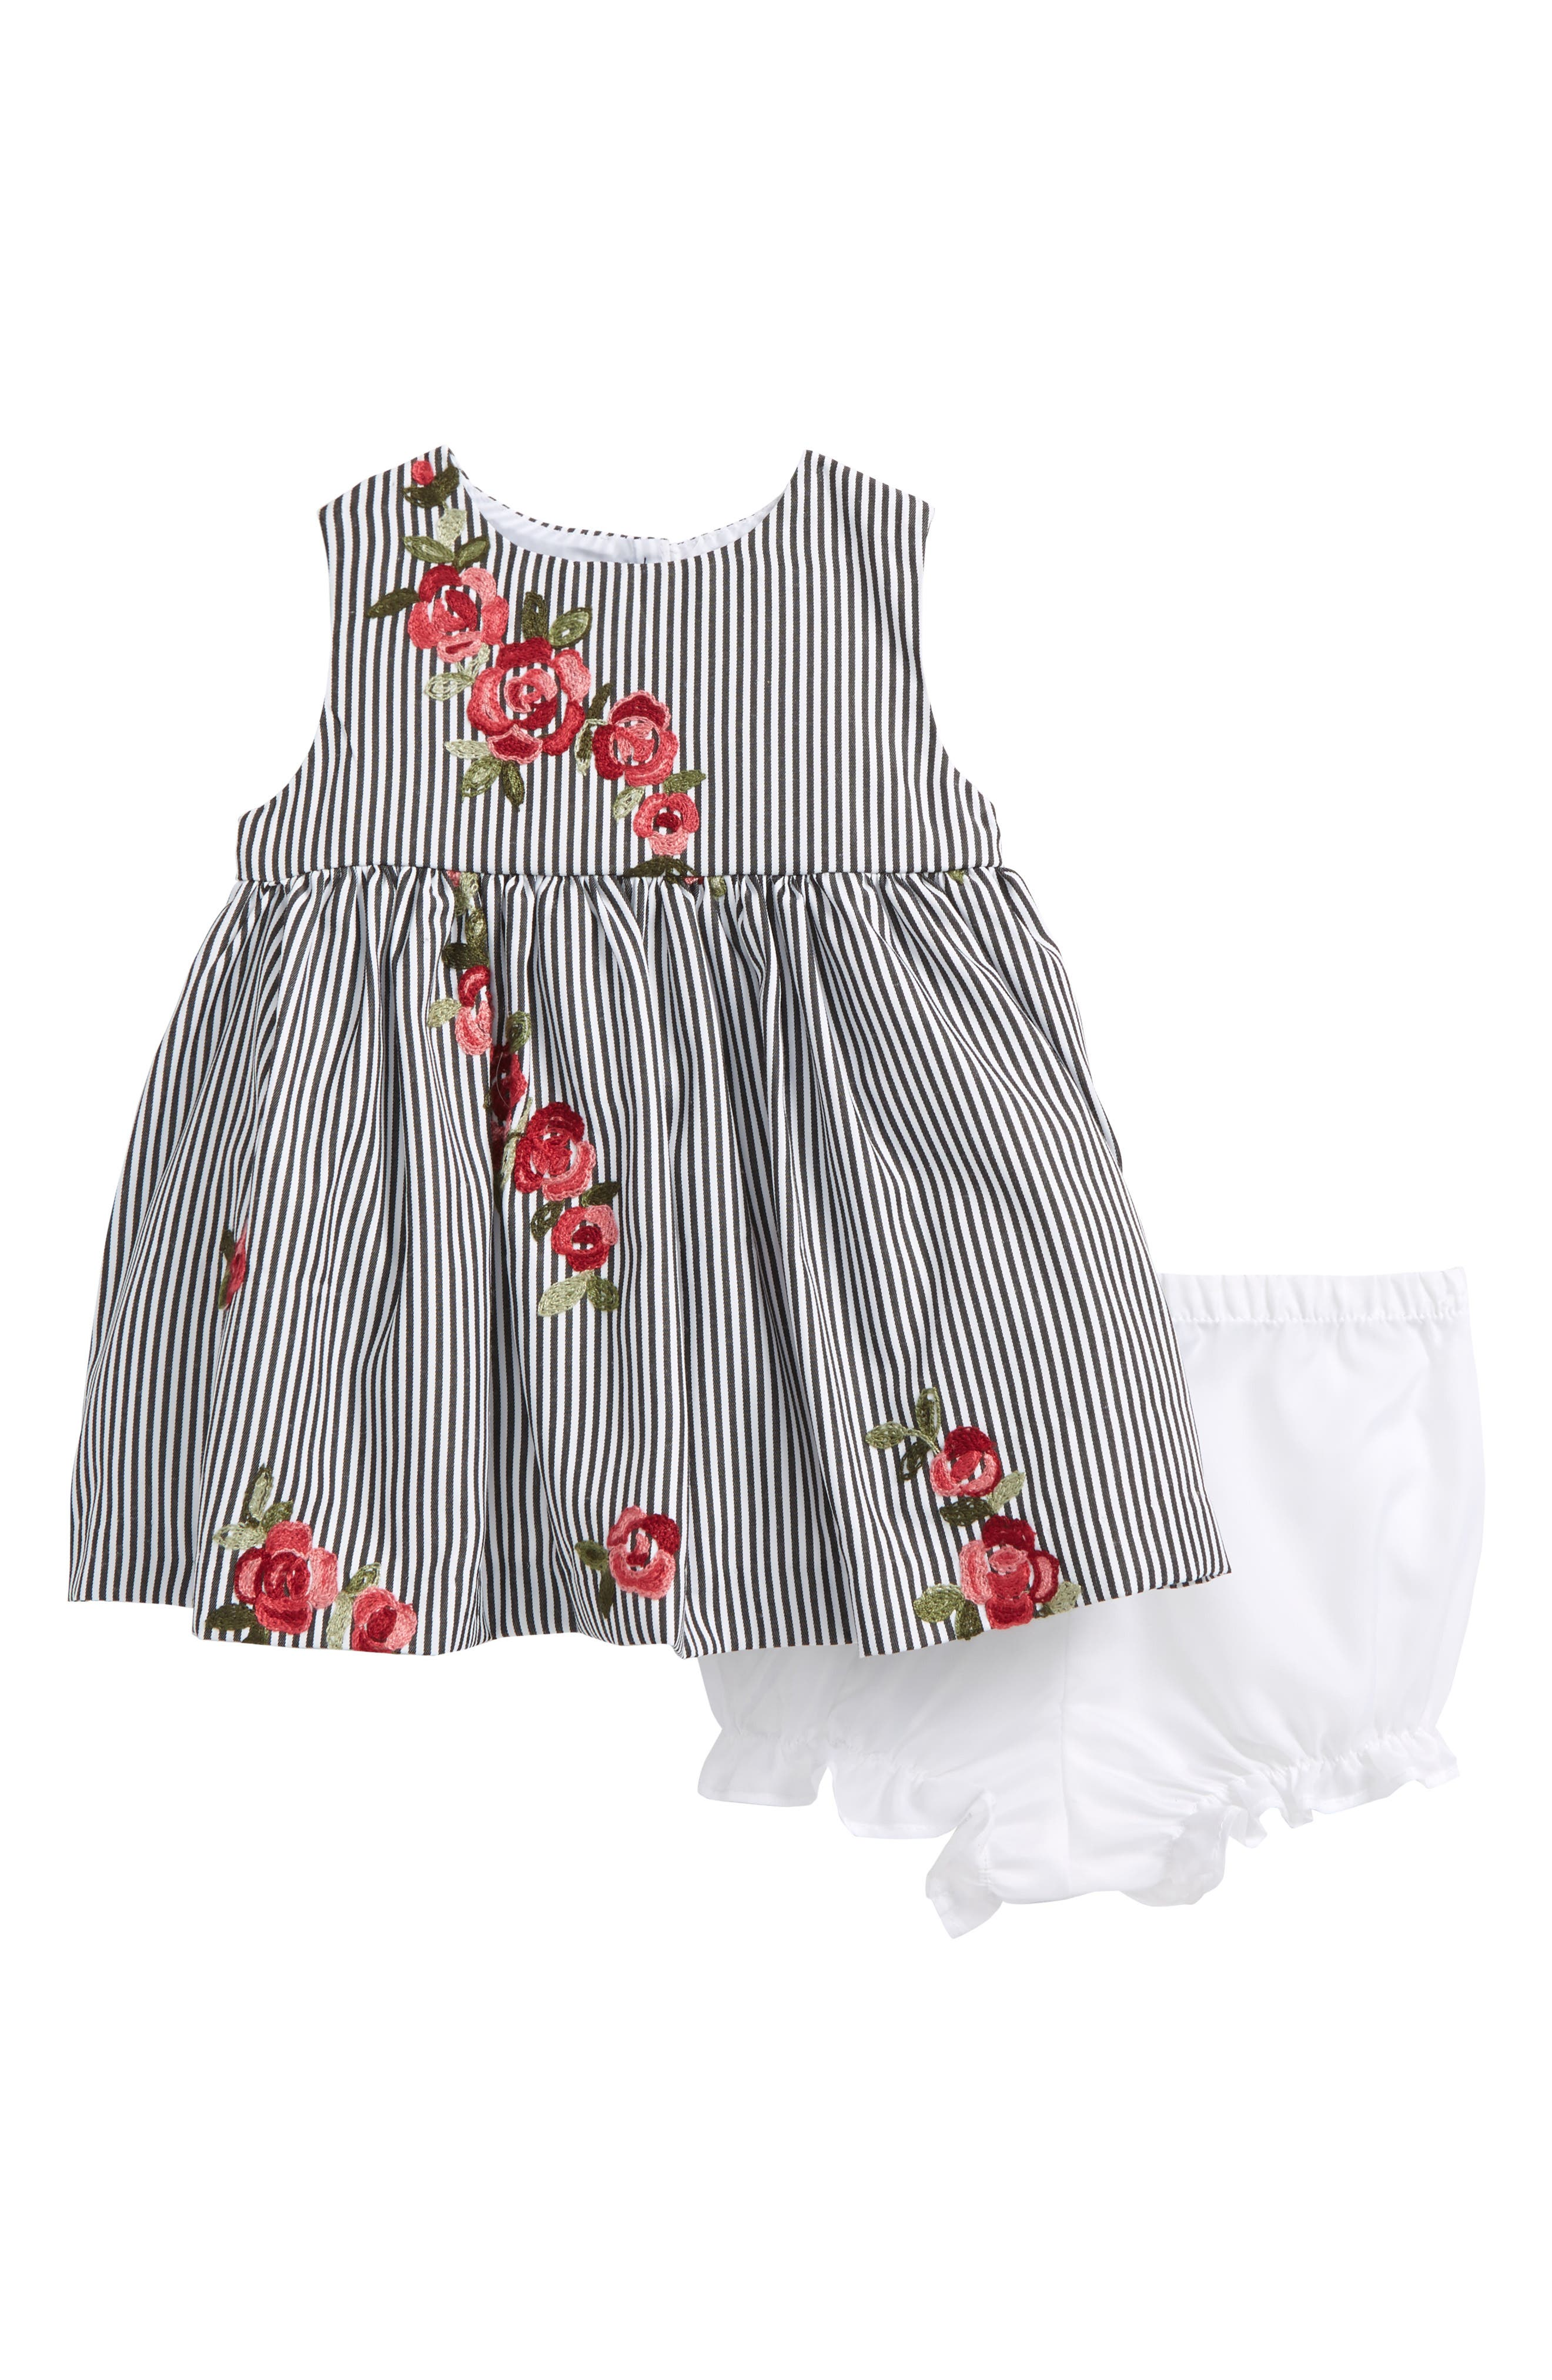 Embroidered Dress,                         Main,                         color, Black / White